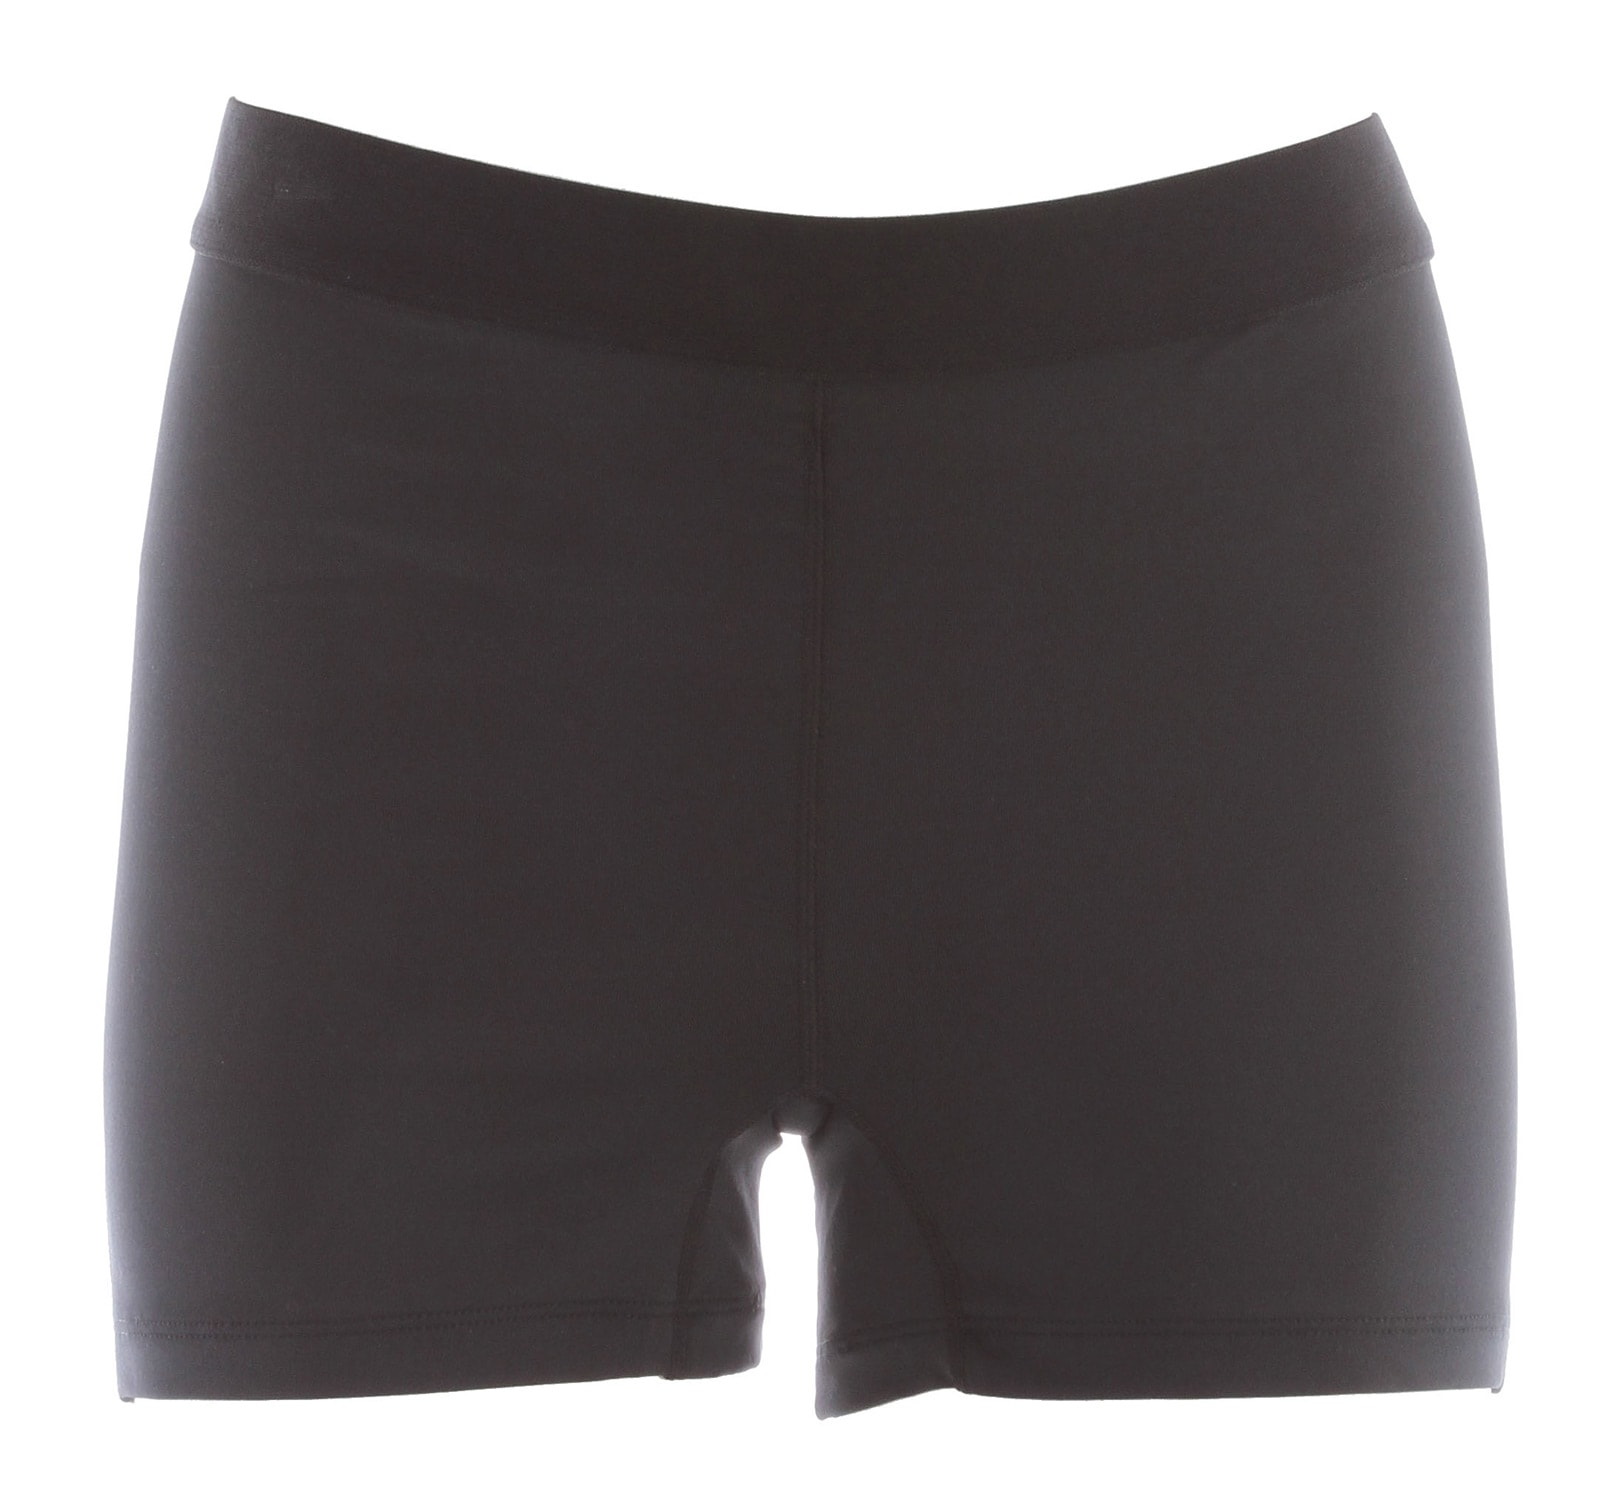 Looking for a cool new pair of CUSTOM LACROSSE SHORTS? Your search is over. We carry a large and ever changing selection of exclusive custom lax shorts for men, women, boys, girls, youth and adults. We design them in house, and are launching new creations all the time so come back often.